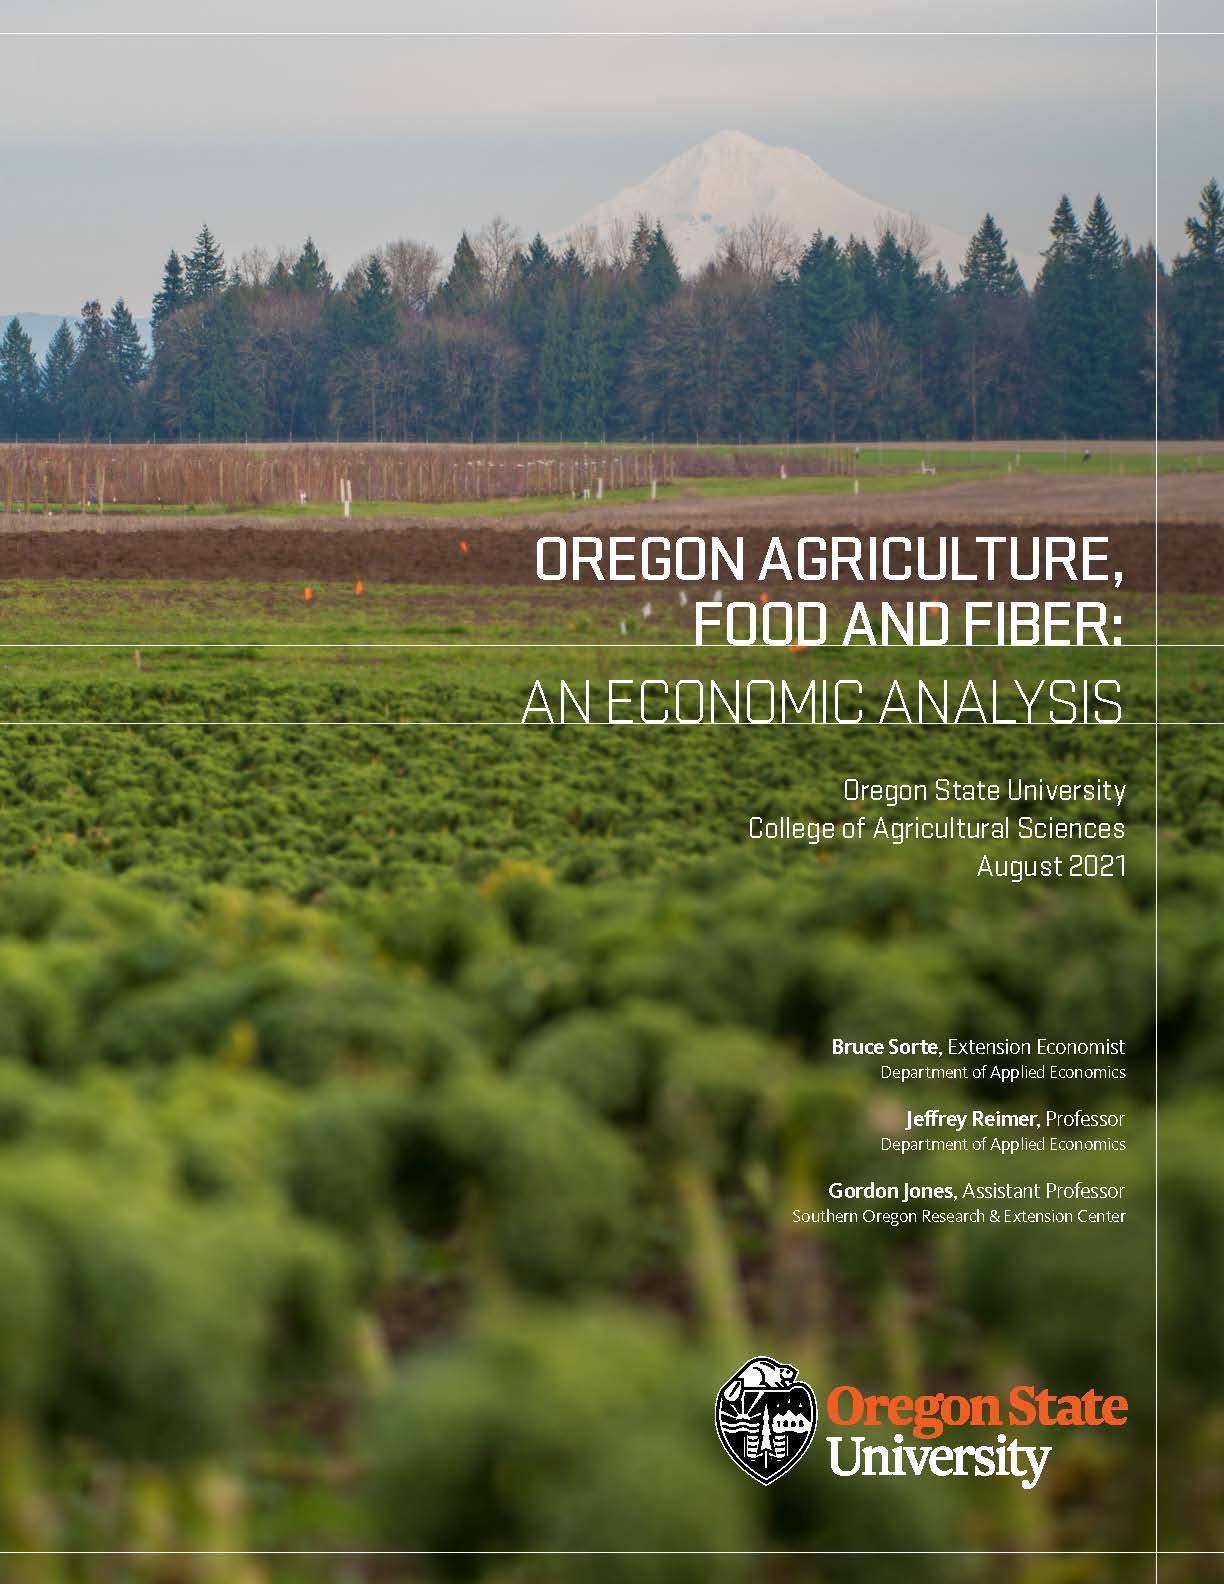 Oregon Agriculture Food and Fiber: An Economic Analysis 2021